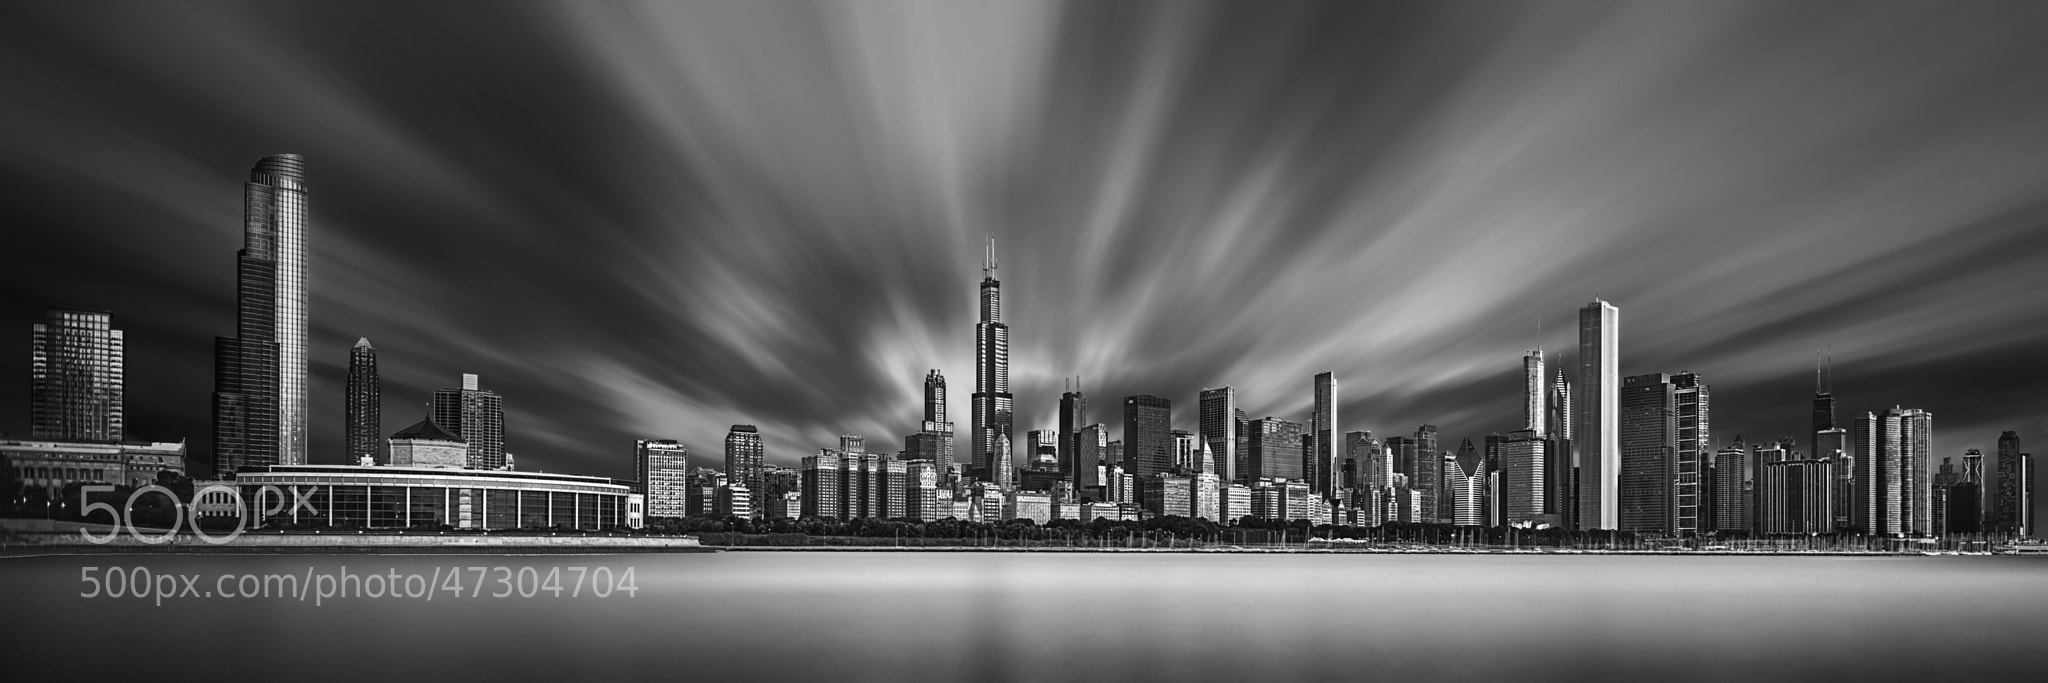 Photograph I Am Chicago by Mabry Campbell on 500px